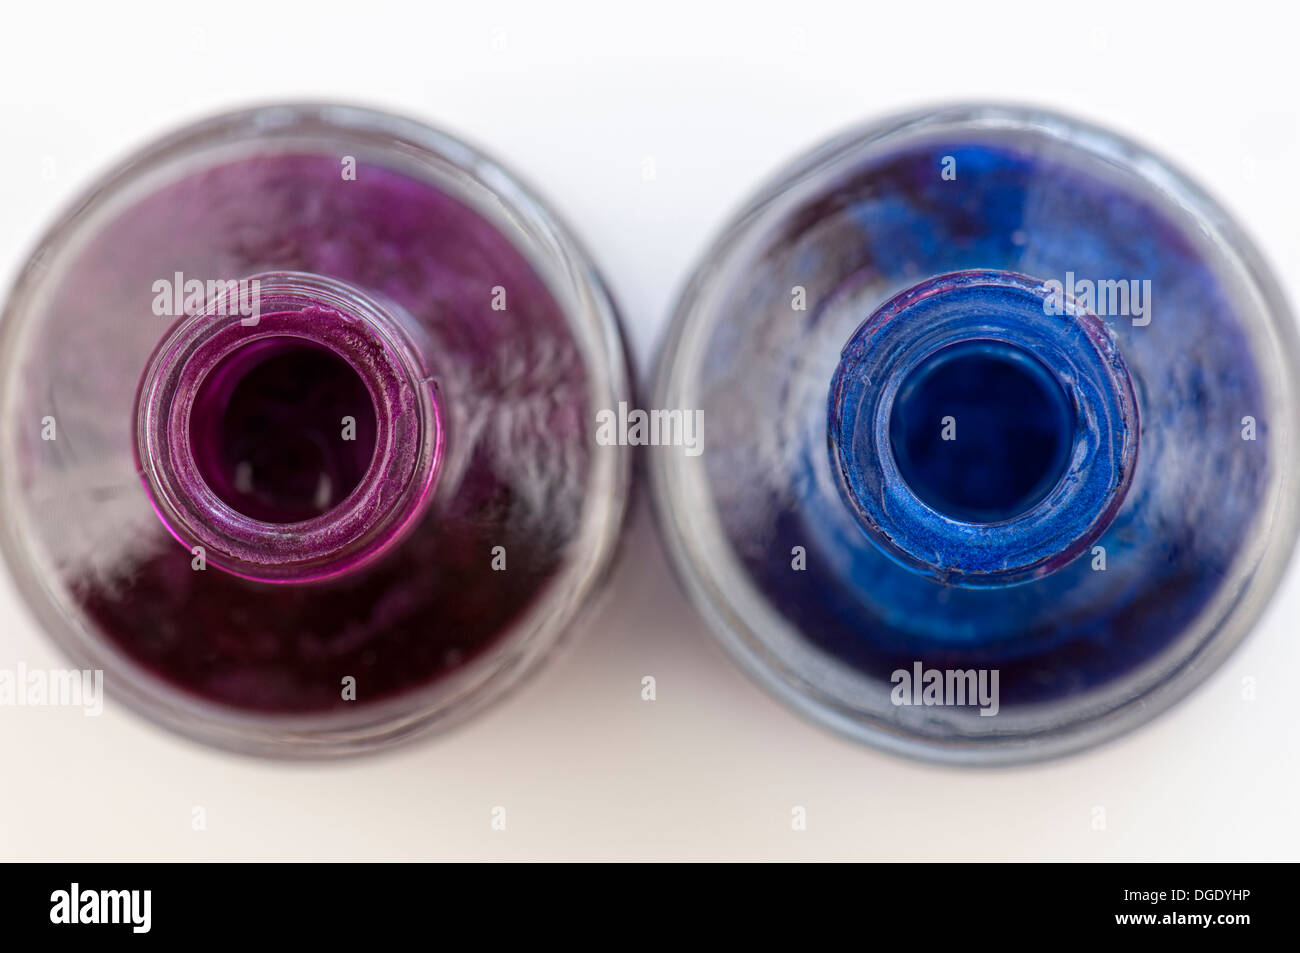 Close up of nail varnish pots in purple and blue - Stock Image